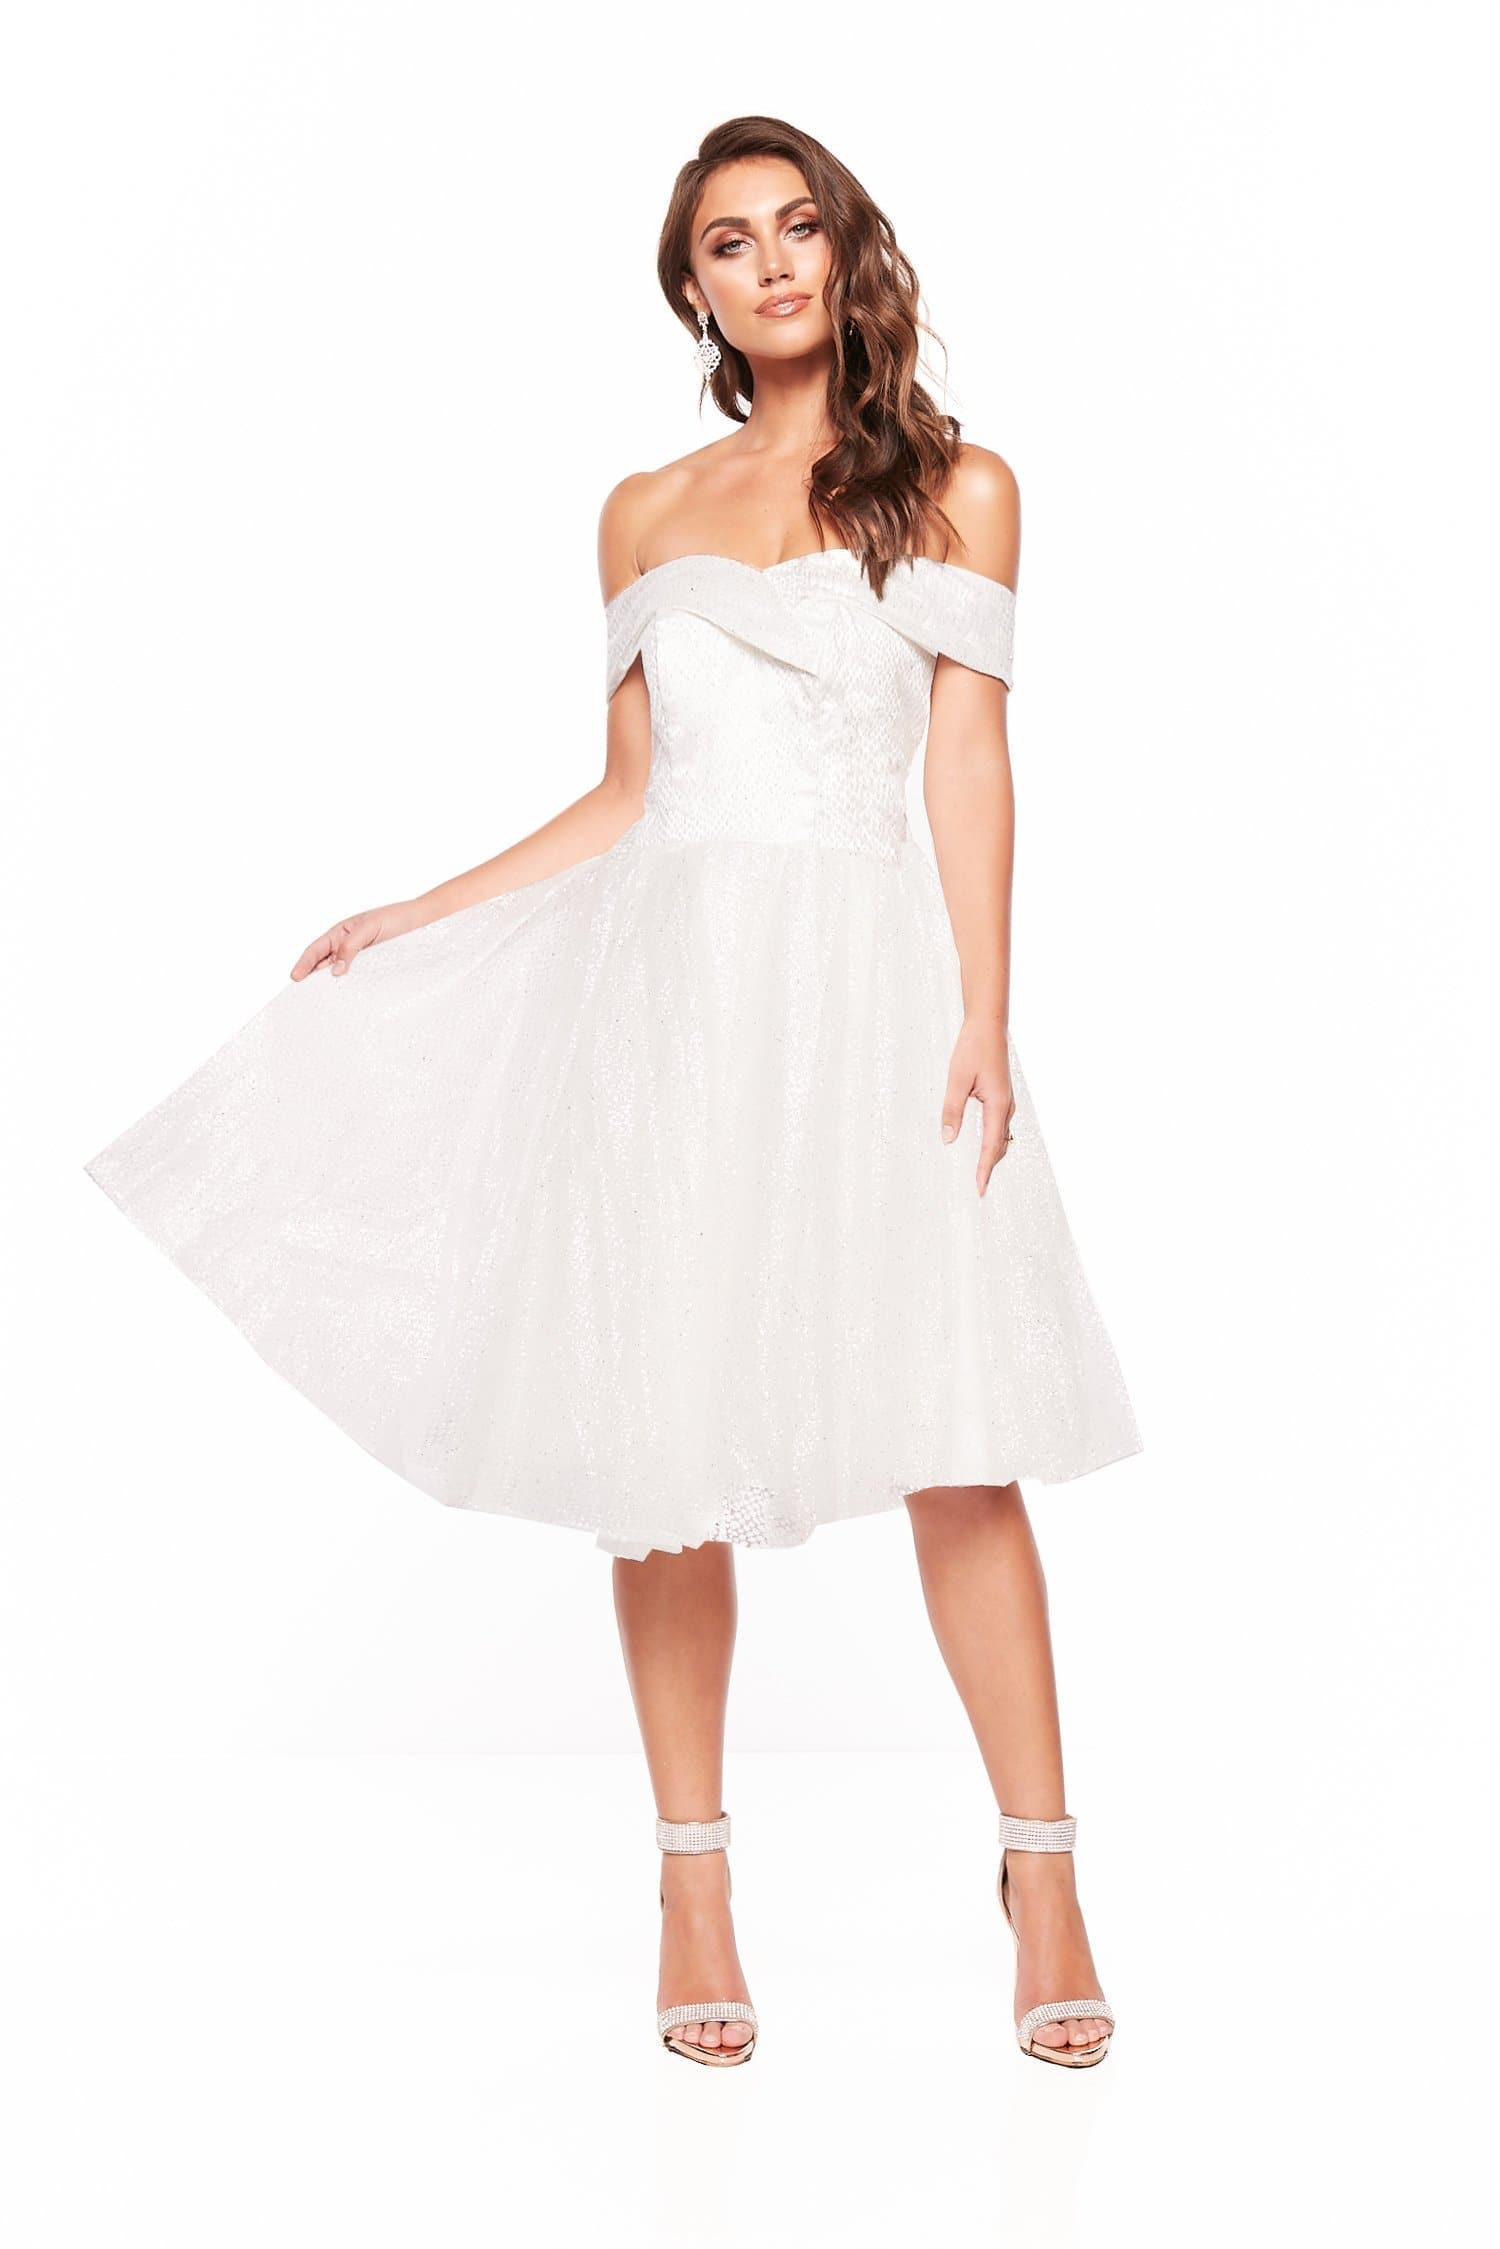 c5fcd7b986 A&N Nyla Glitter Cocktail Off Shoulder Midi Dress - White – A&N Luxe ...